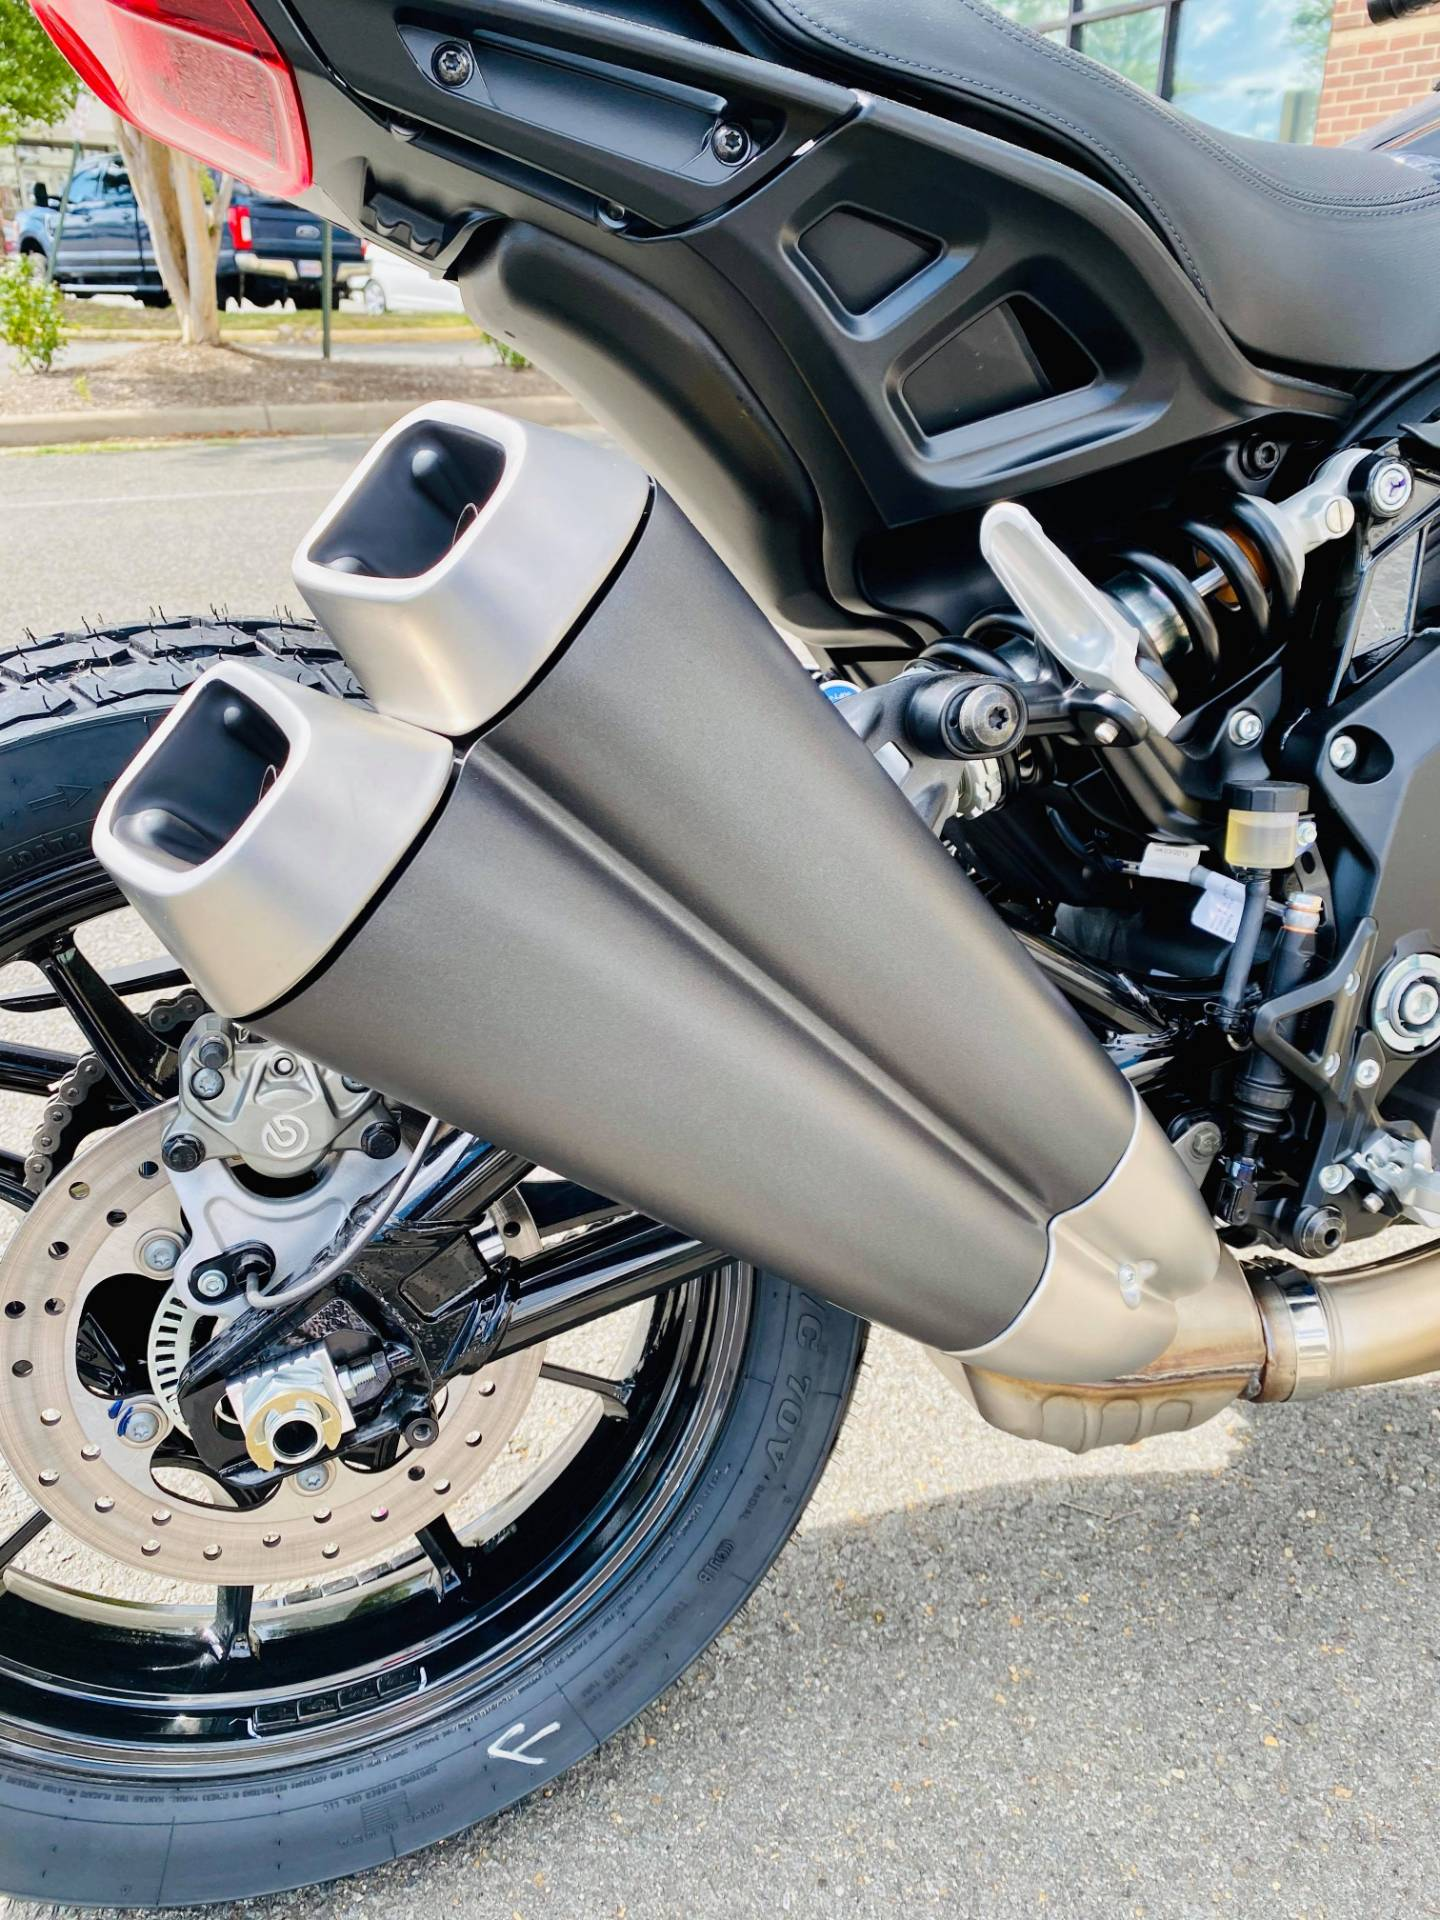 2019 Indian FTR™ 1200 S in Fredericksburg, Virginia - Photo 8